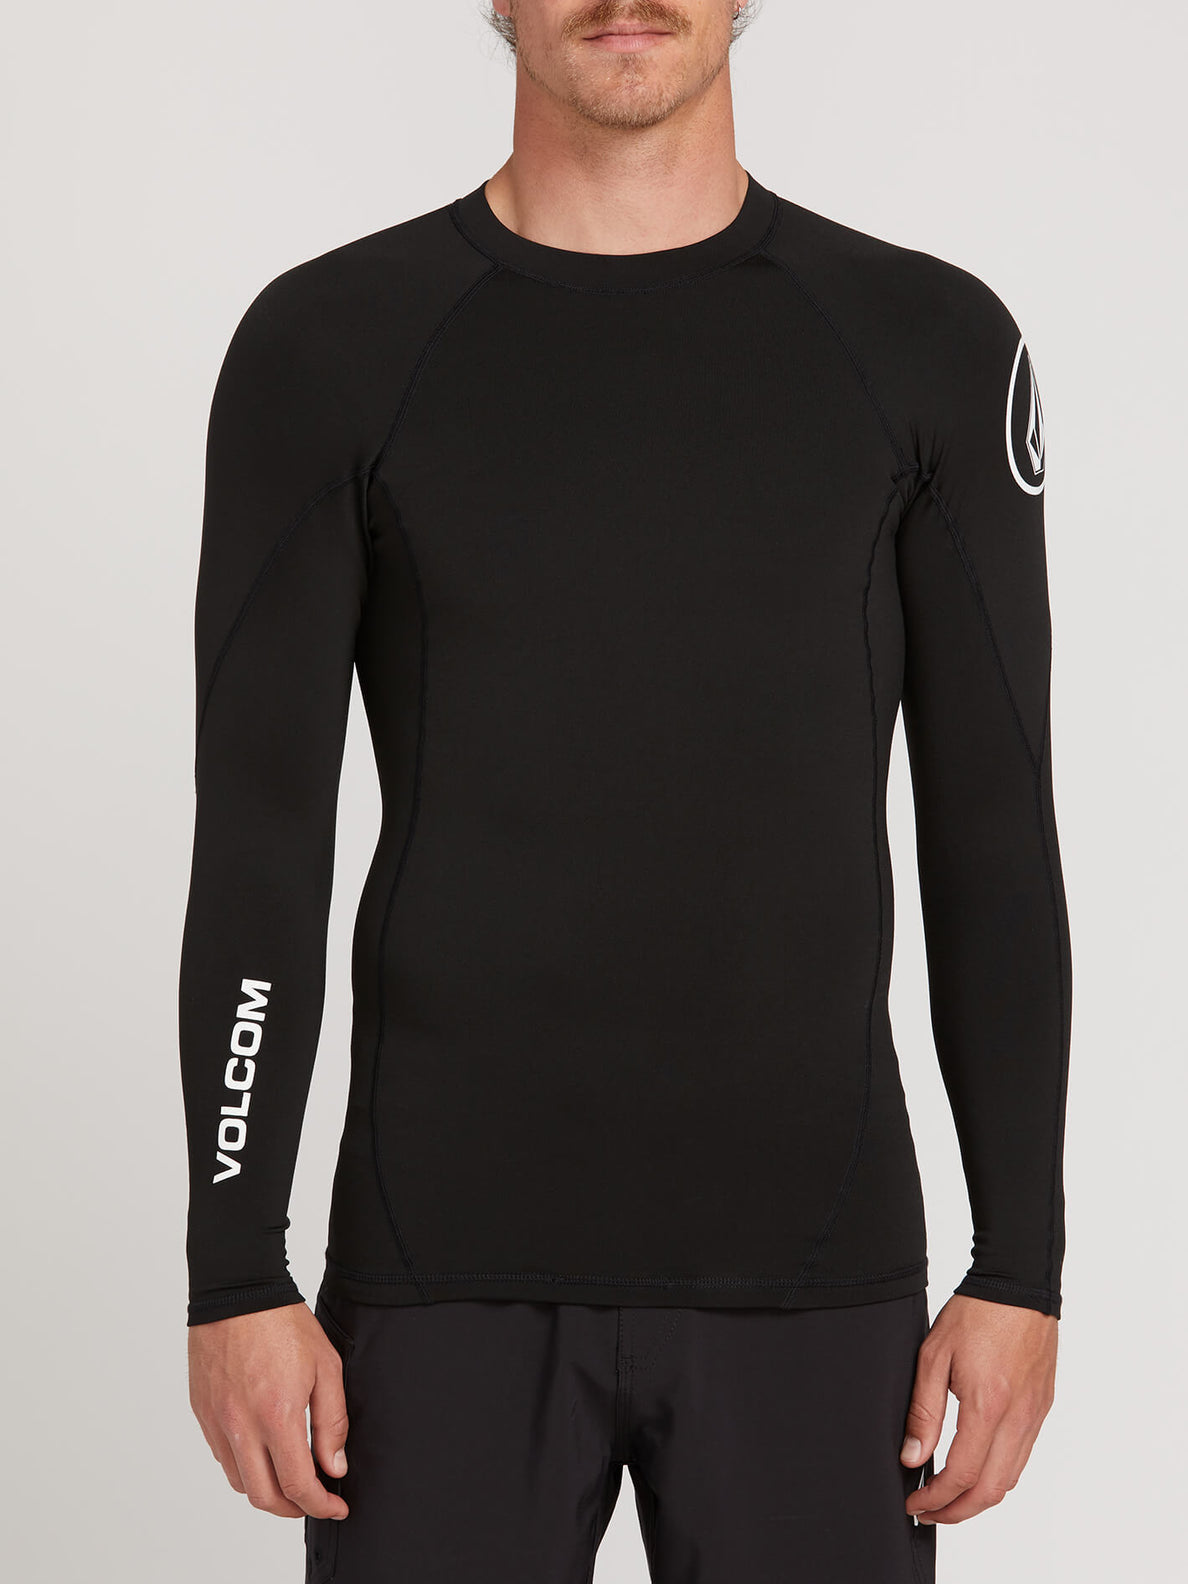 Hotainer Long Sleeve Rashguard In Black, Front View